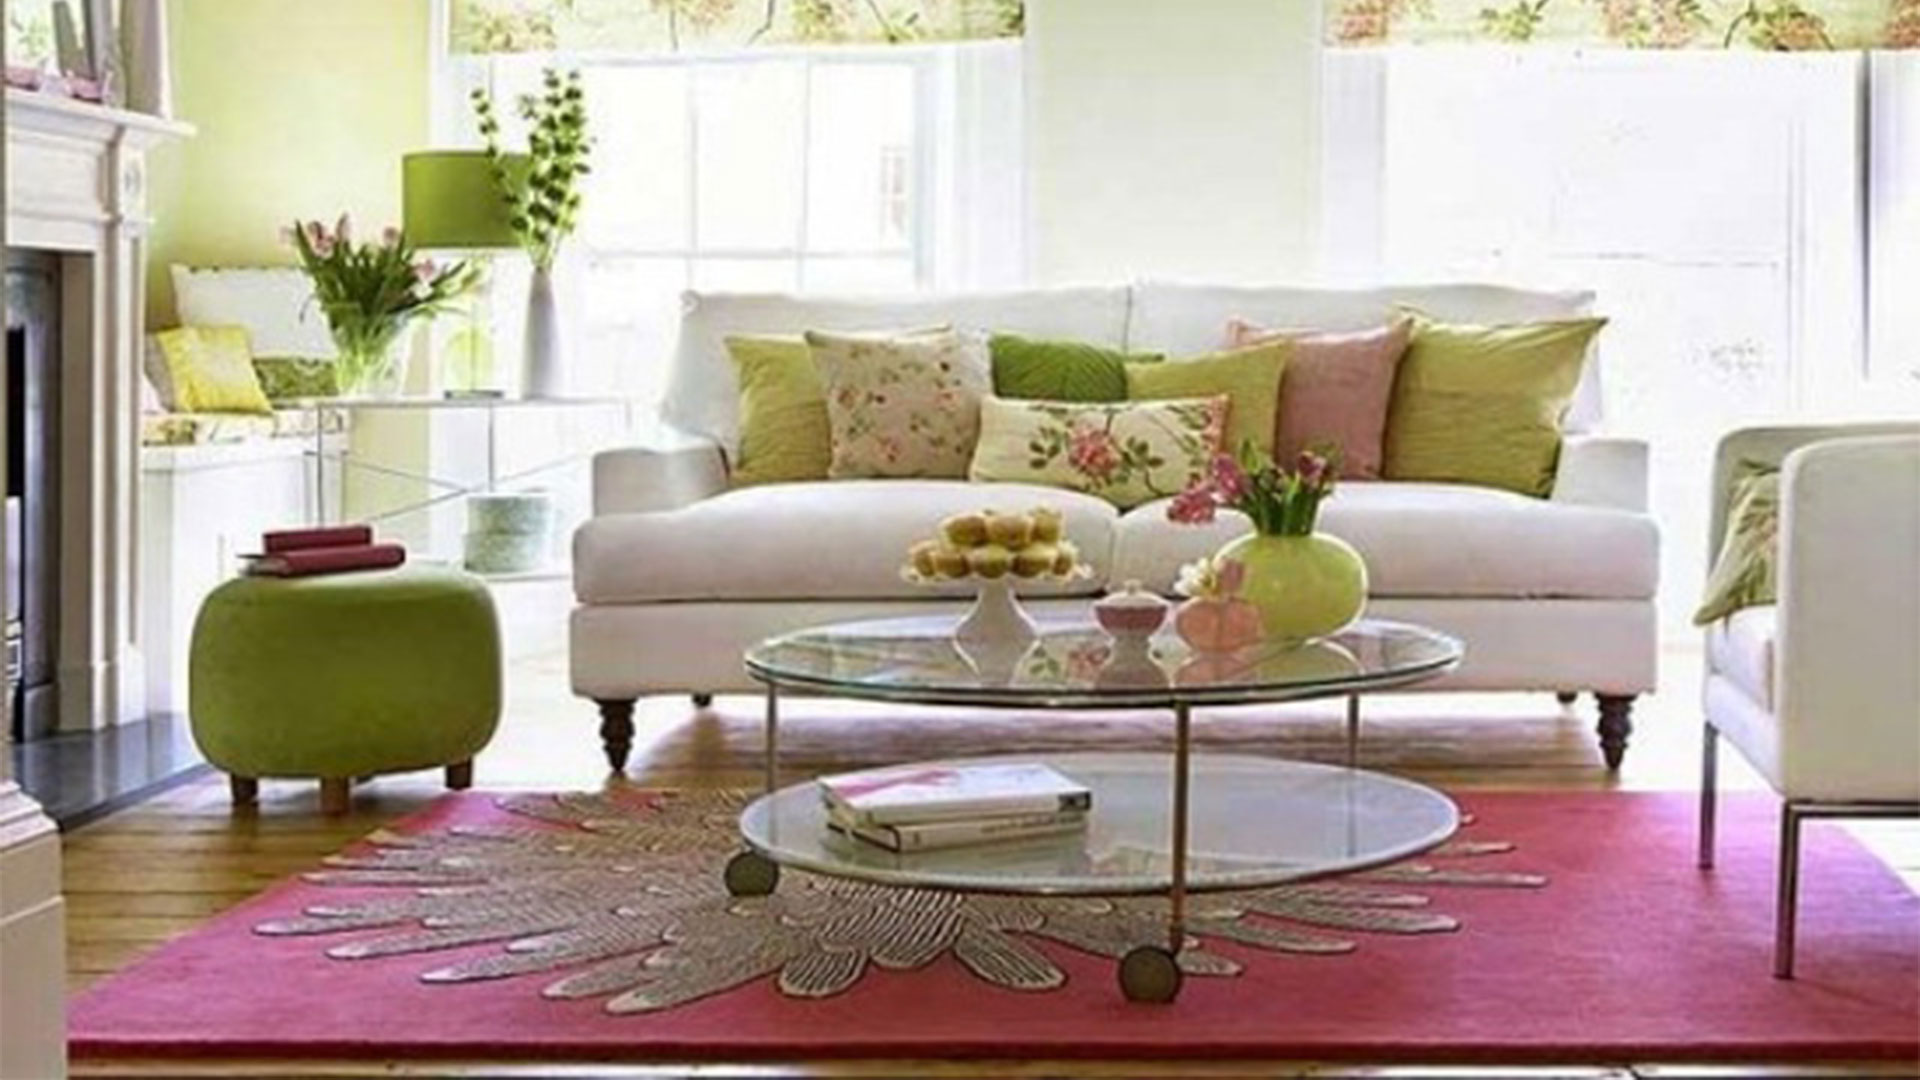 36 Living Room Decorating Ideas That Smells Like Spring. Valentines Ideas Yahoo Answers. Bathroom Ideas Beige. Garden Junk Ideas Forum. Backyard Deck And Pool Ideas. Tiny Apartment Bathroom Ideas. Bathroom Lighting Ideas For Double Sinks. Marriage Proposal Ideas Gold Coast. Curtain Ideas For Arched Windows